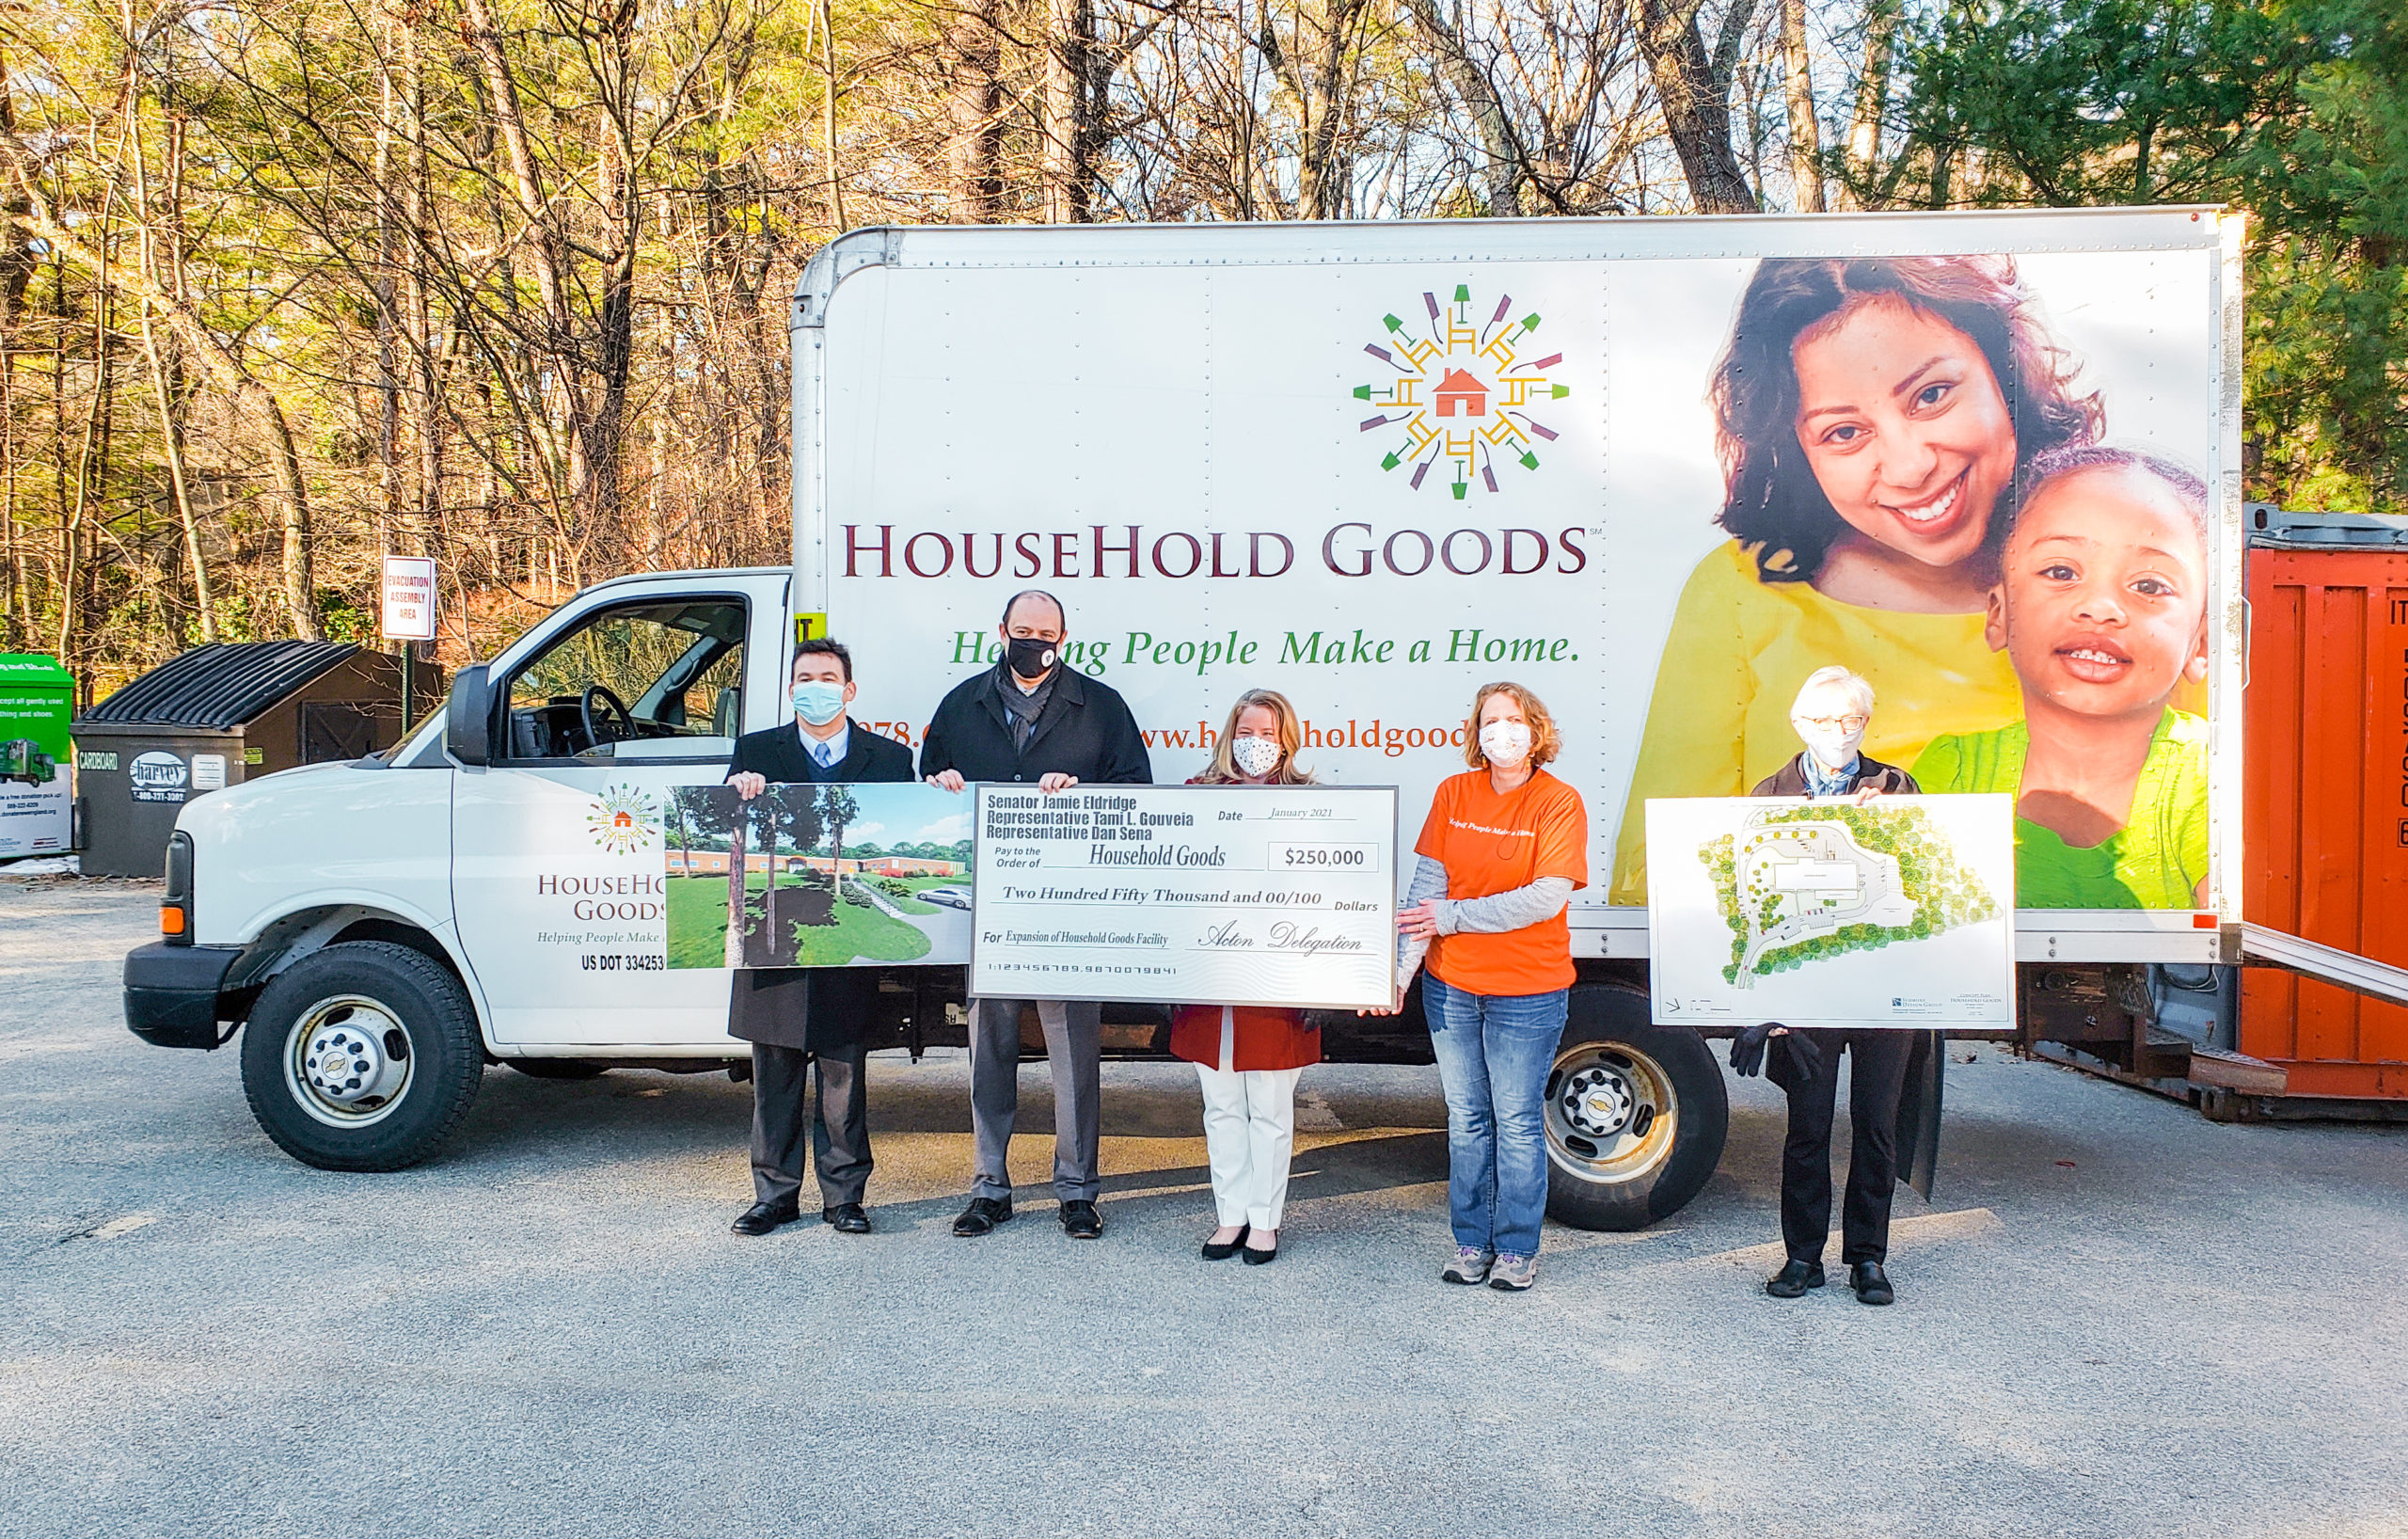 The Acton Delegation presents a Big Check to Household Goods, which provides furnishings for people in need, Acton, MA (L-R: Rep. Sena, Sen. Eldridge, Rep. Gouveia, Sharon & Barbara of Household Goods)